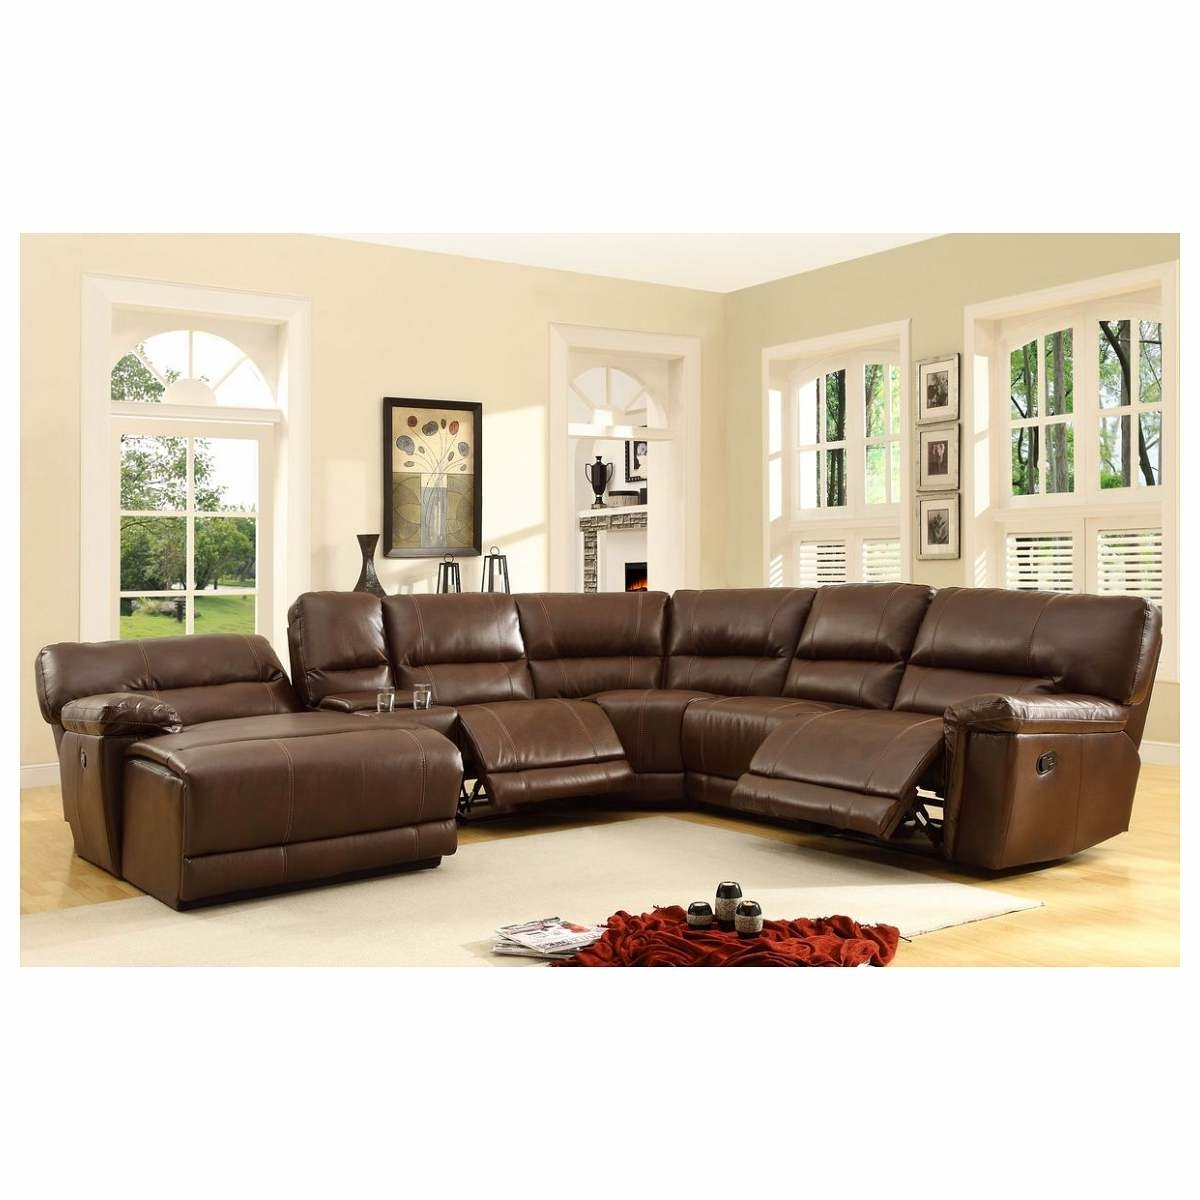 6 Pc Blythe Collection Brown Bonded Leather Match Upholstered Inside Most Popular Durham Region Sectional Sofas (View 2 of 20)